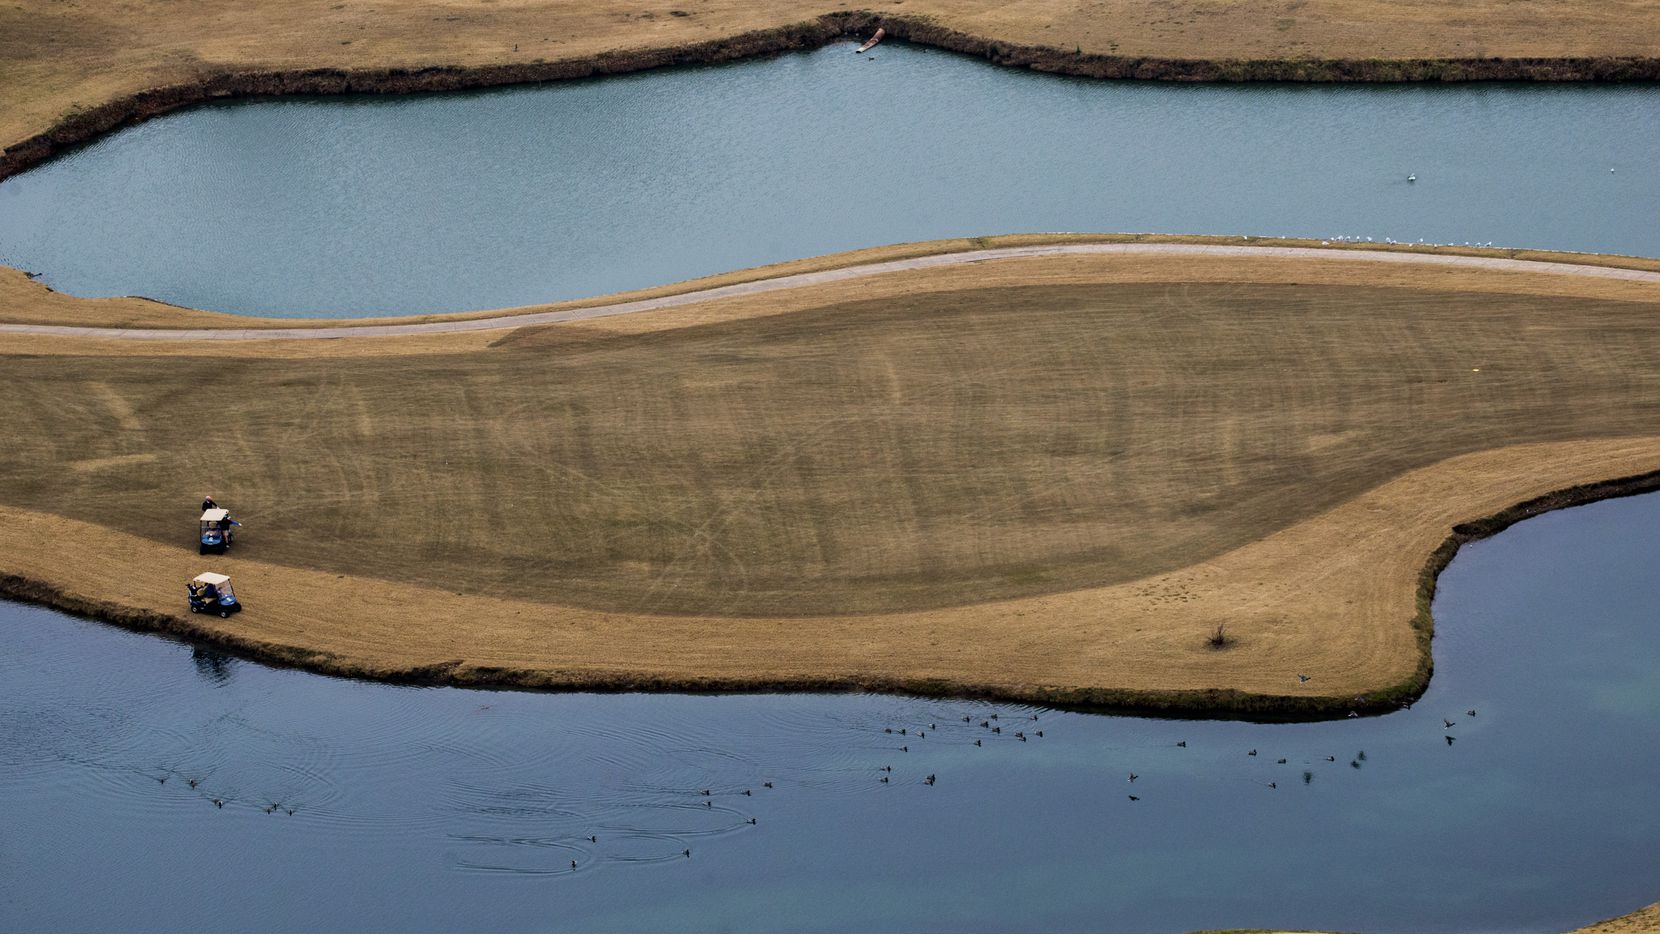 Men play golf at Firewheel Golf Park as photographed from a helicopter on Thursday, December 14, 2016 in Garland.